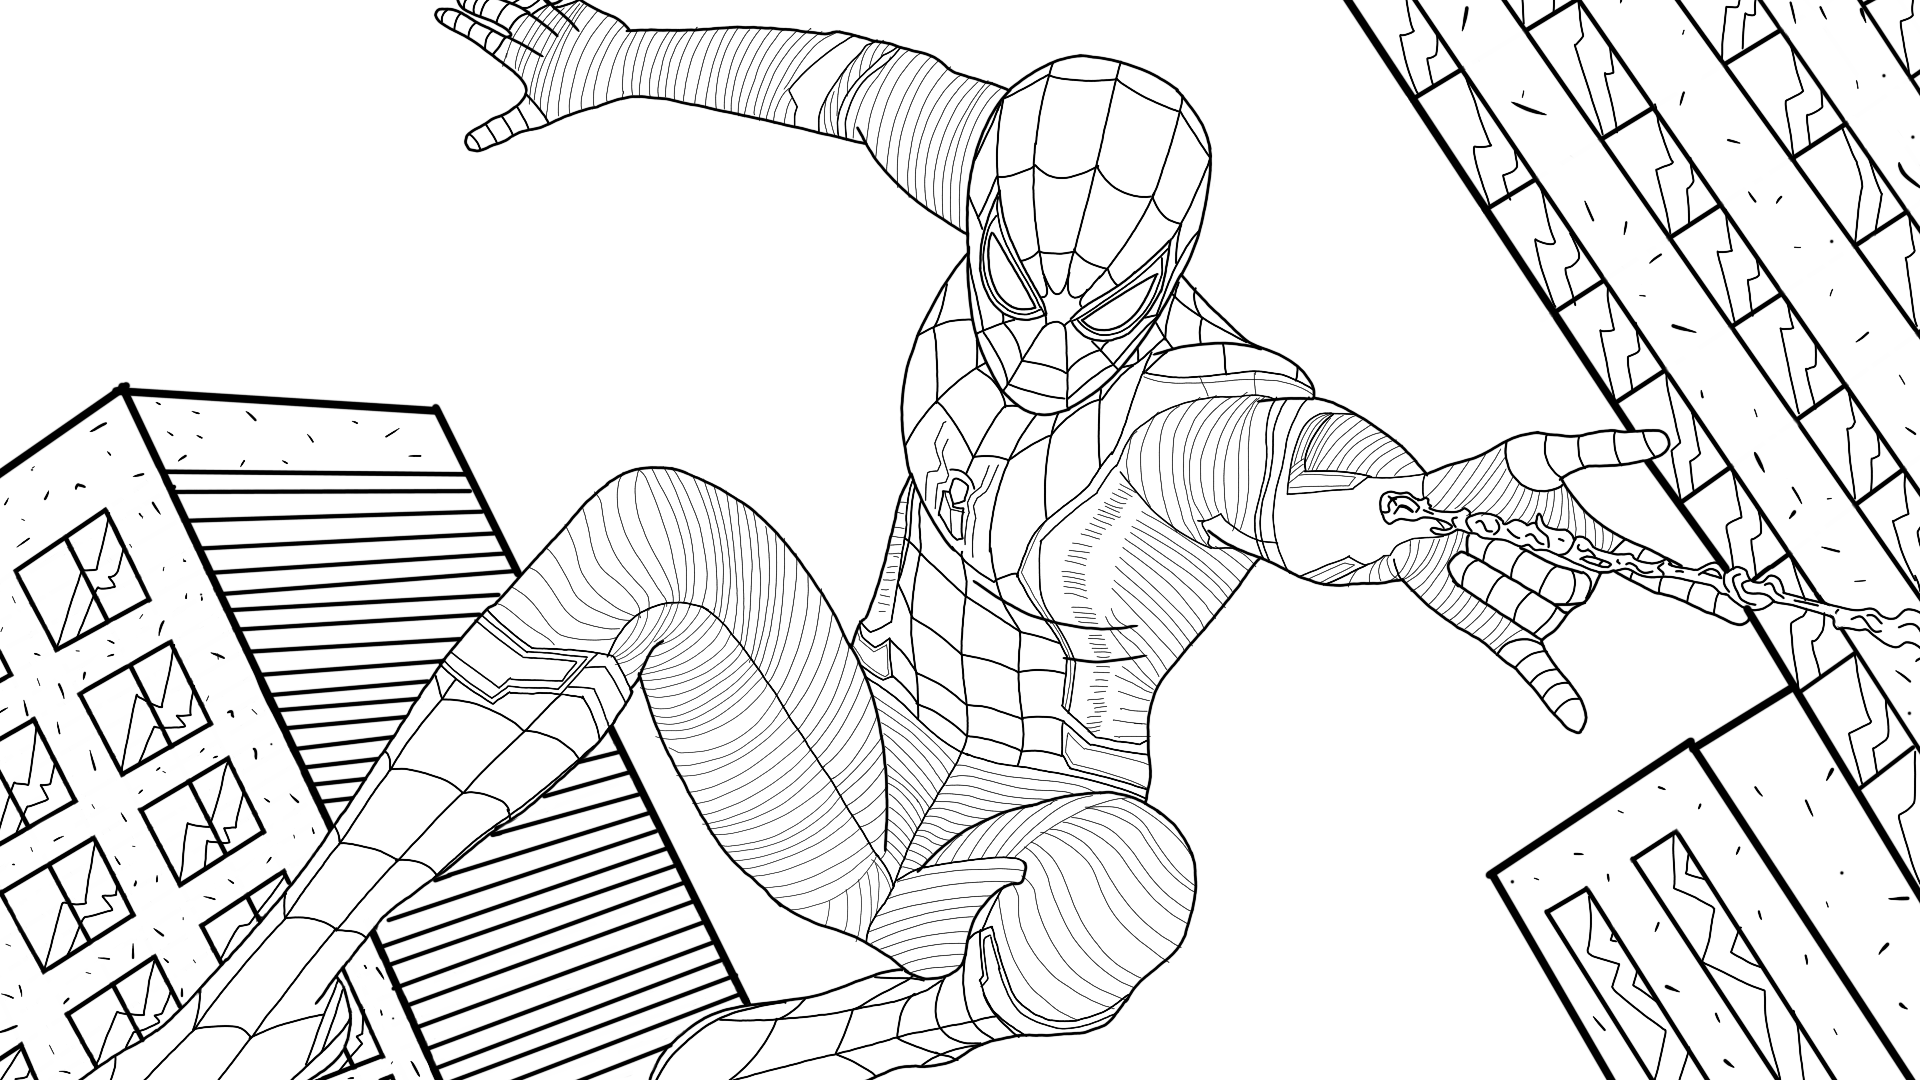 spider man stealth suit coloring page spider man superhero coloring pages man page spider stealth coloring suit